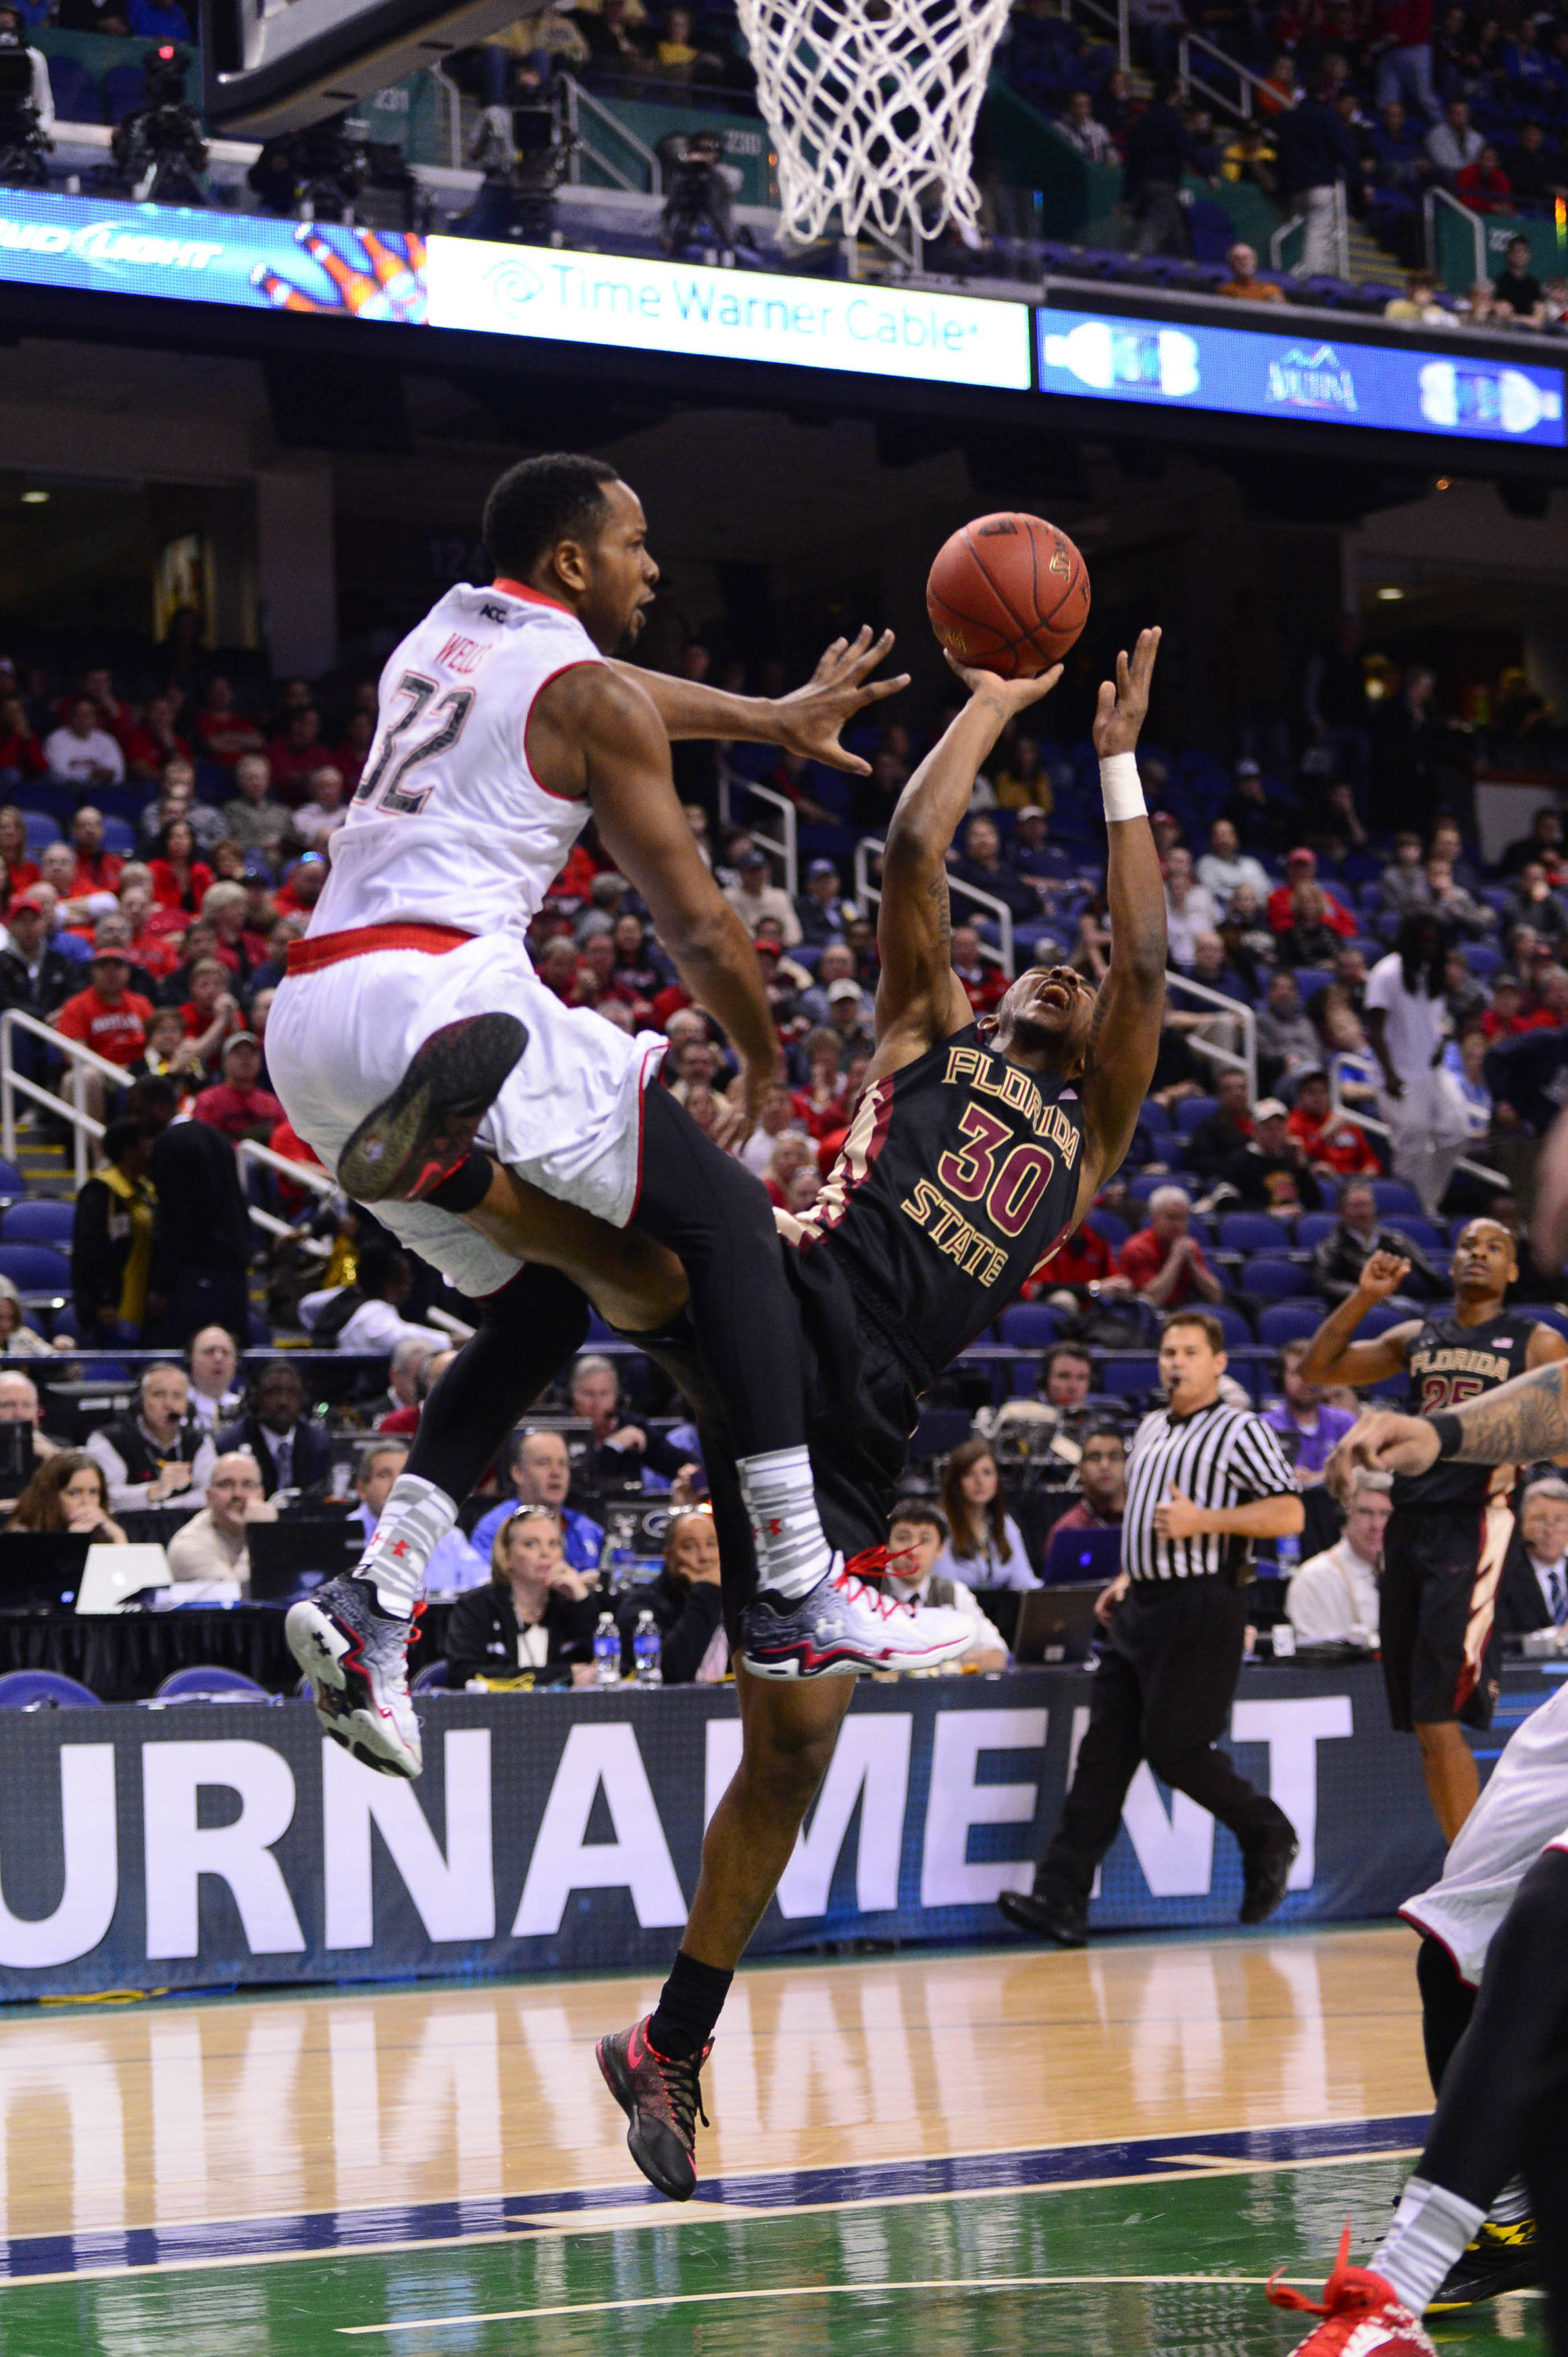 Florida State Seminoles guard Ian Miller (30) shoots as Maryland Terrapins guard/forward Dez Wells (32) defends in the first half in the second round of the ACC college basketball tournament at Greensboro Coliseum. Mandatory Credit: Bob Donnan-USA TODAY Sports